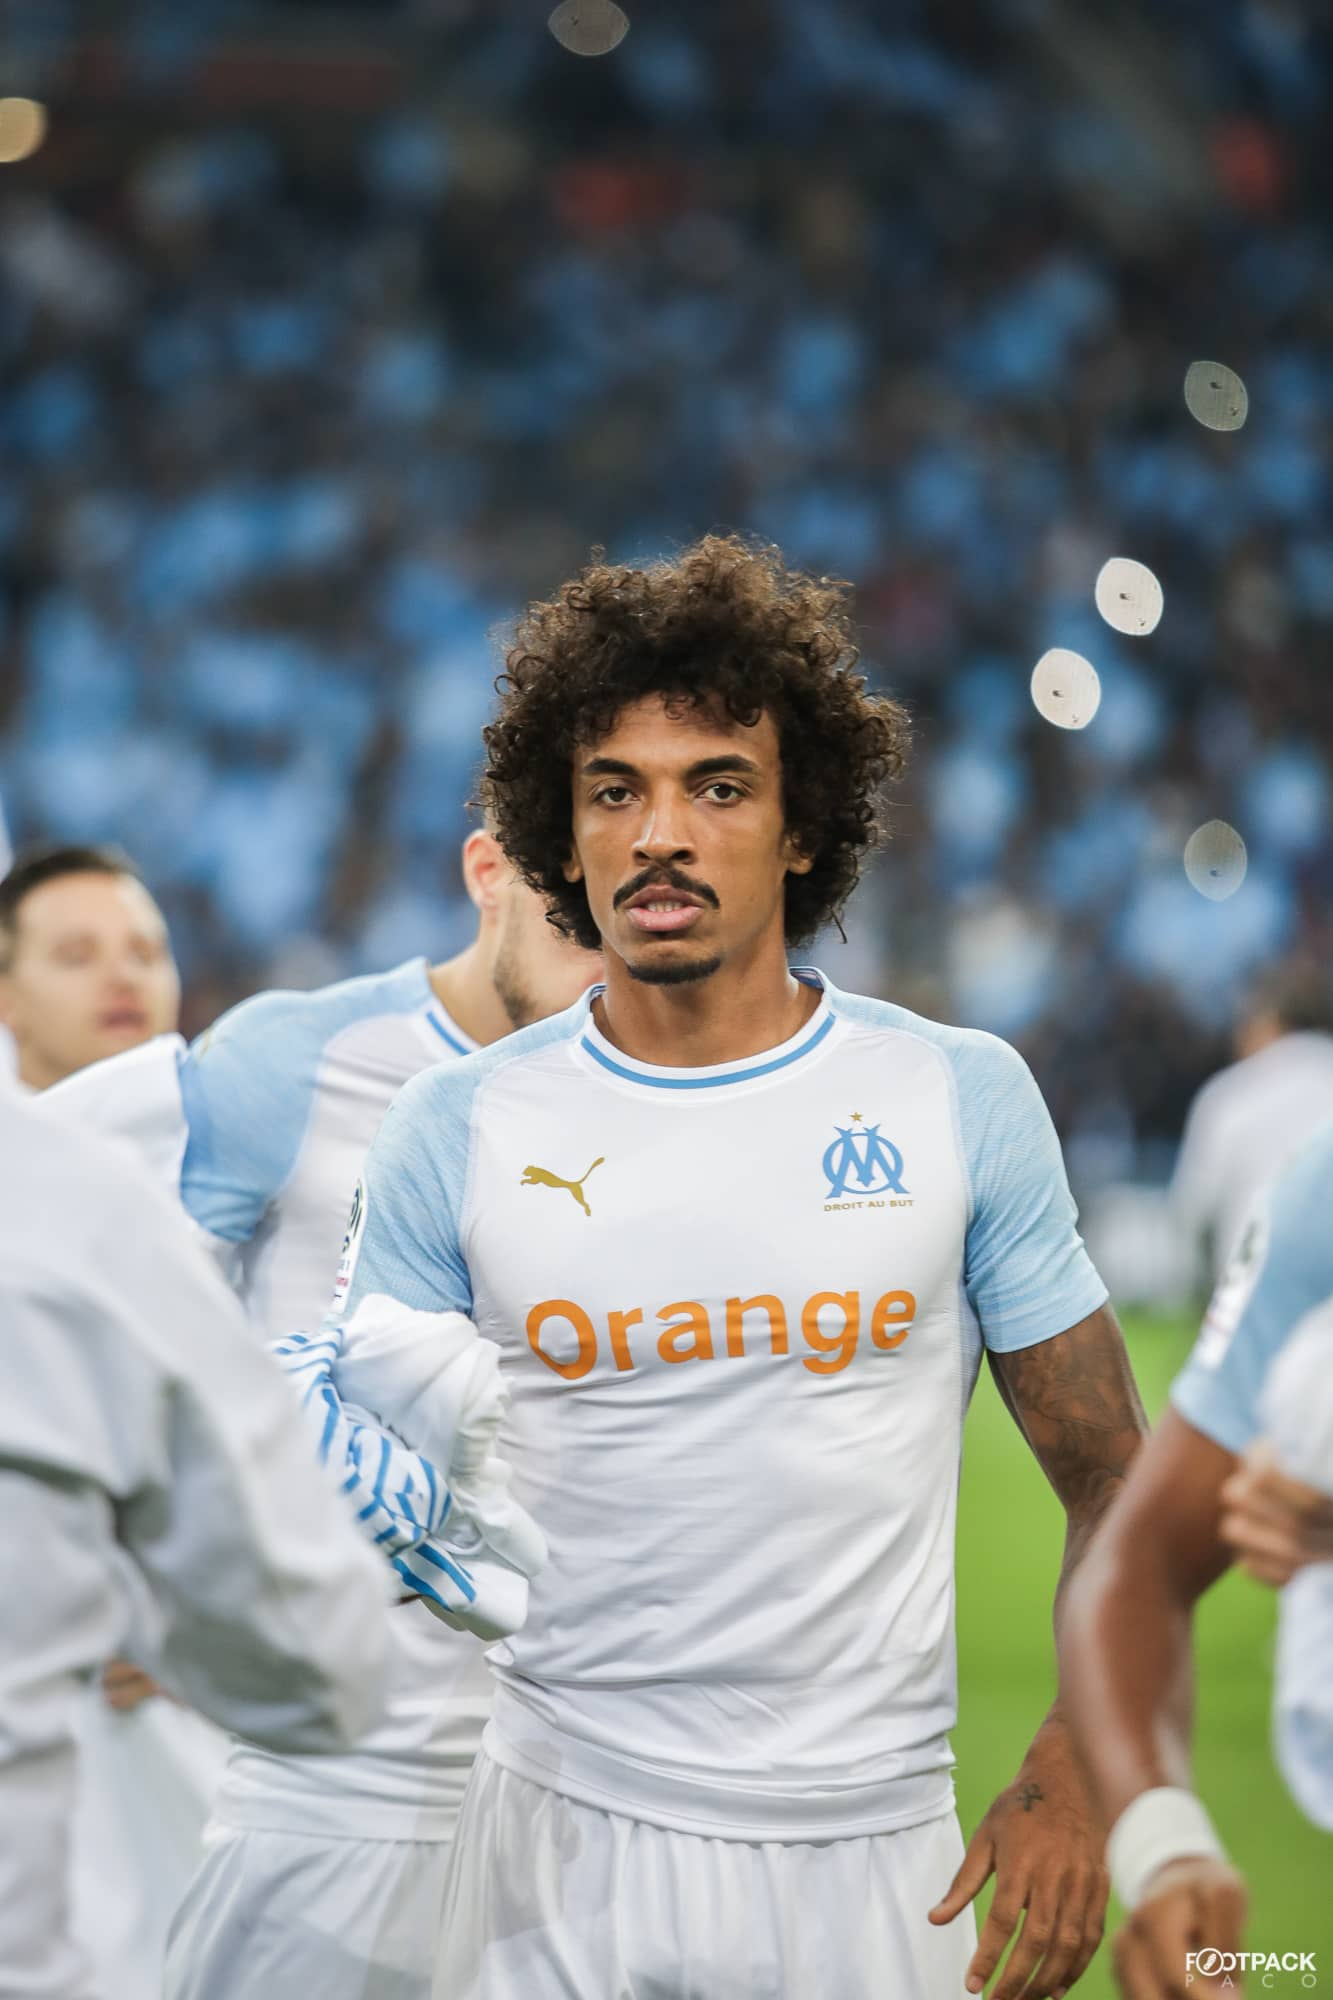 luiz-gustavo-top-50-photos-footpack